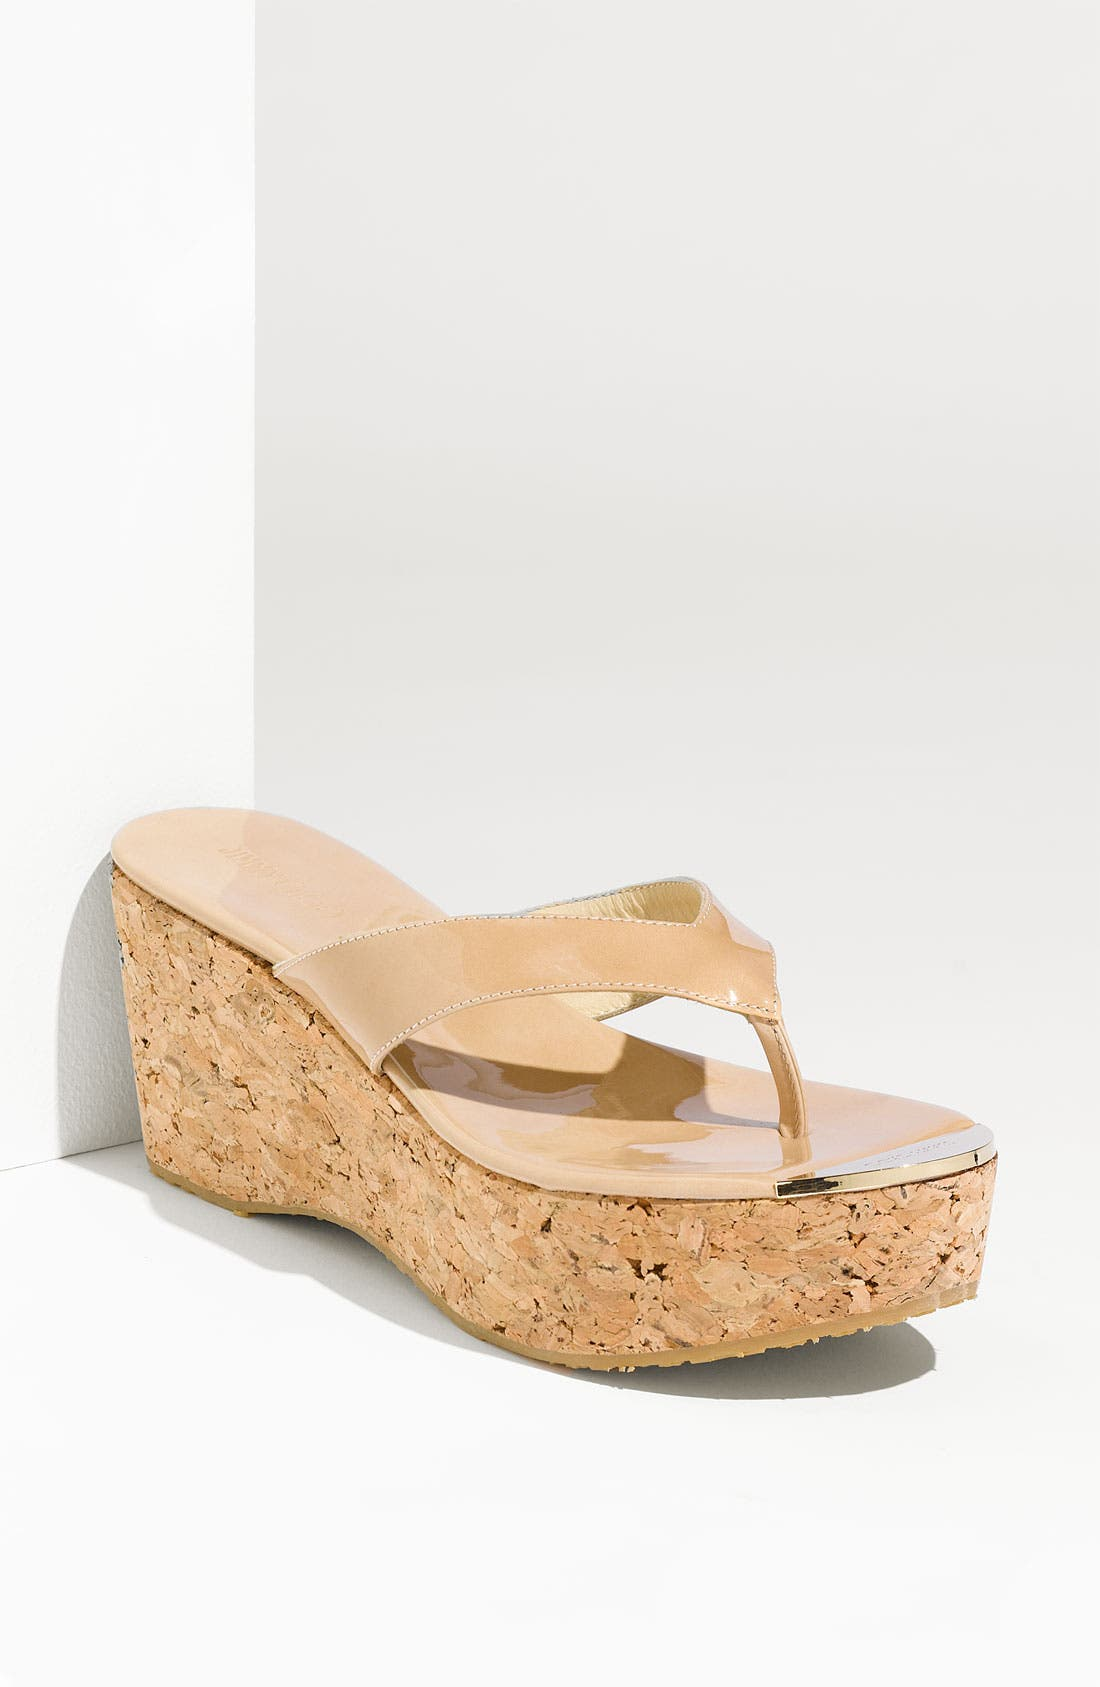 Alternate Image 1 Selected - Jimmy Choo 'Pathos Pat' Cork Wedge Sandal